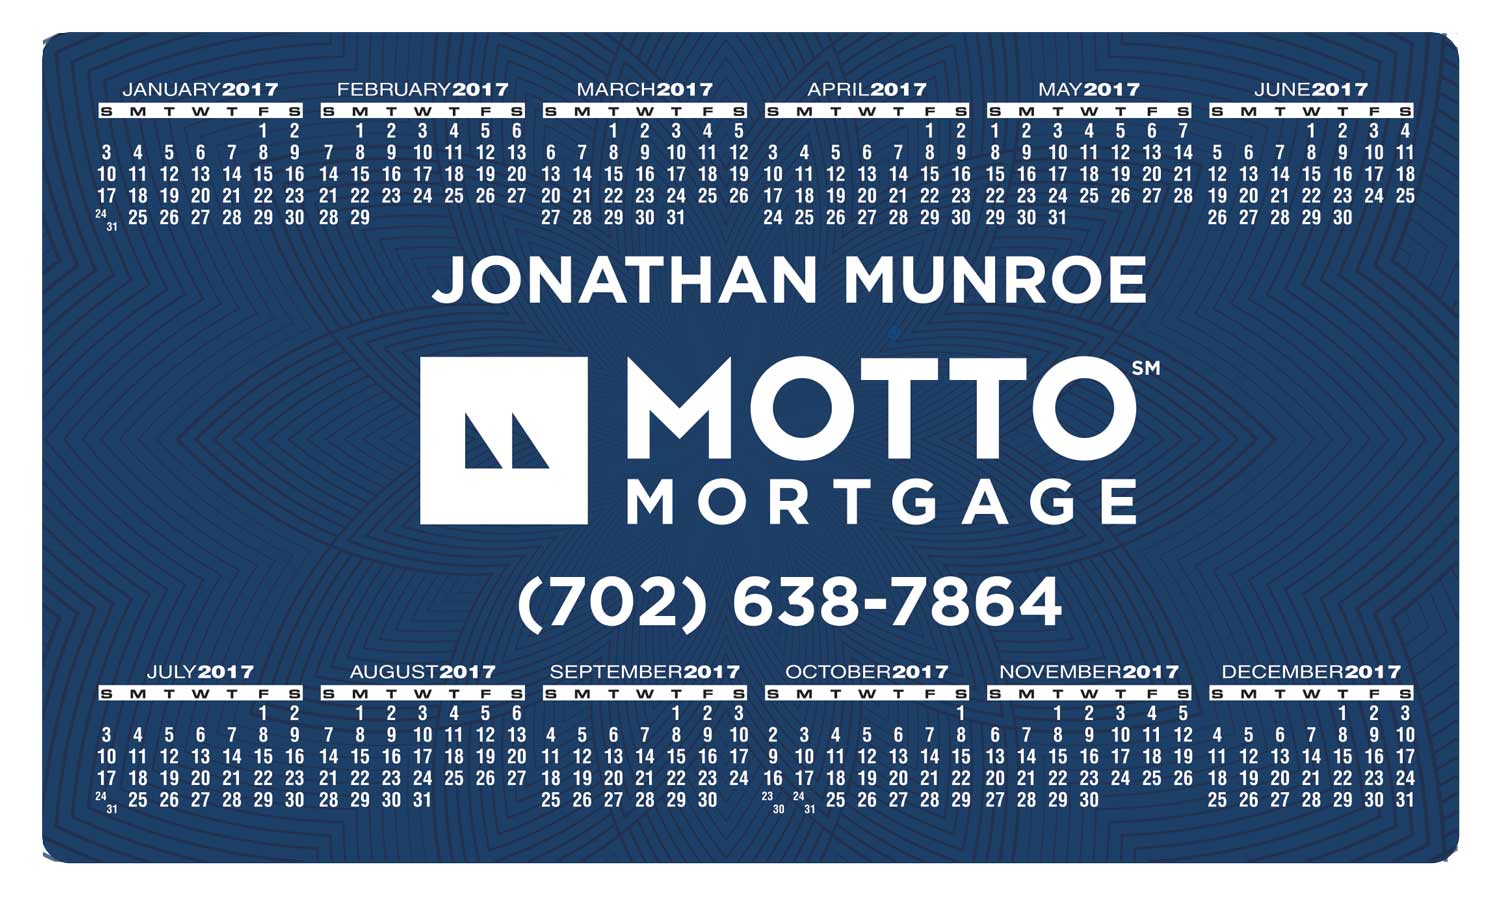 MOTTO Magnetic 4x7 Calendar 2017 - Personalize